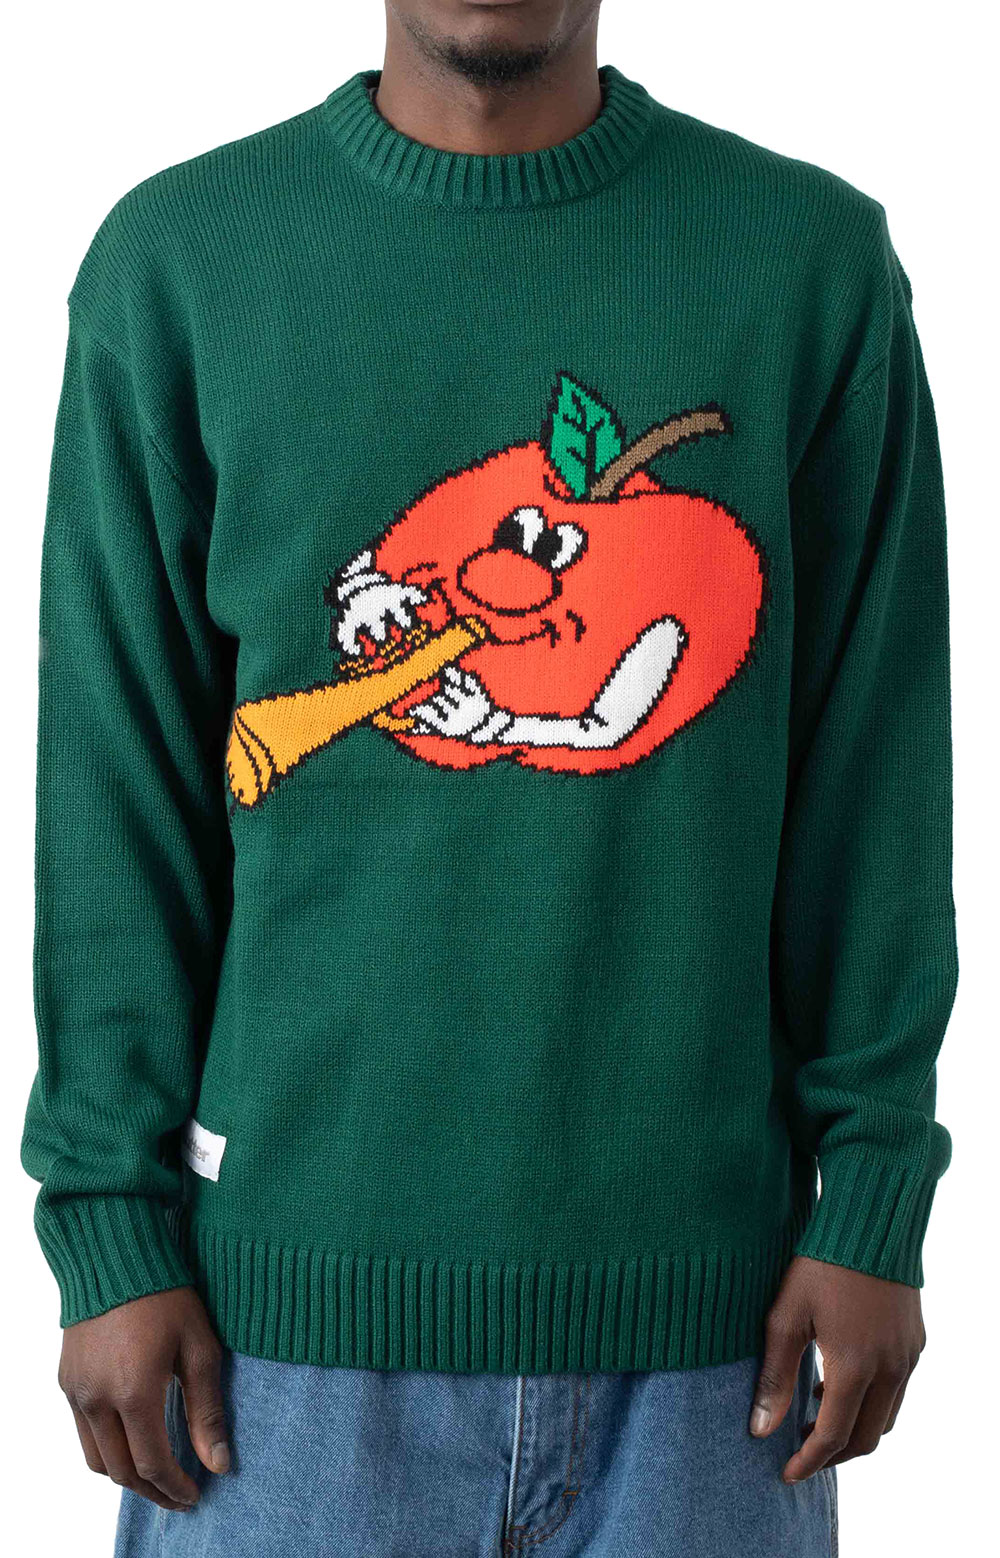 Apple Knit Sweater - Forest Green